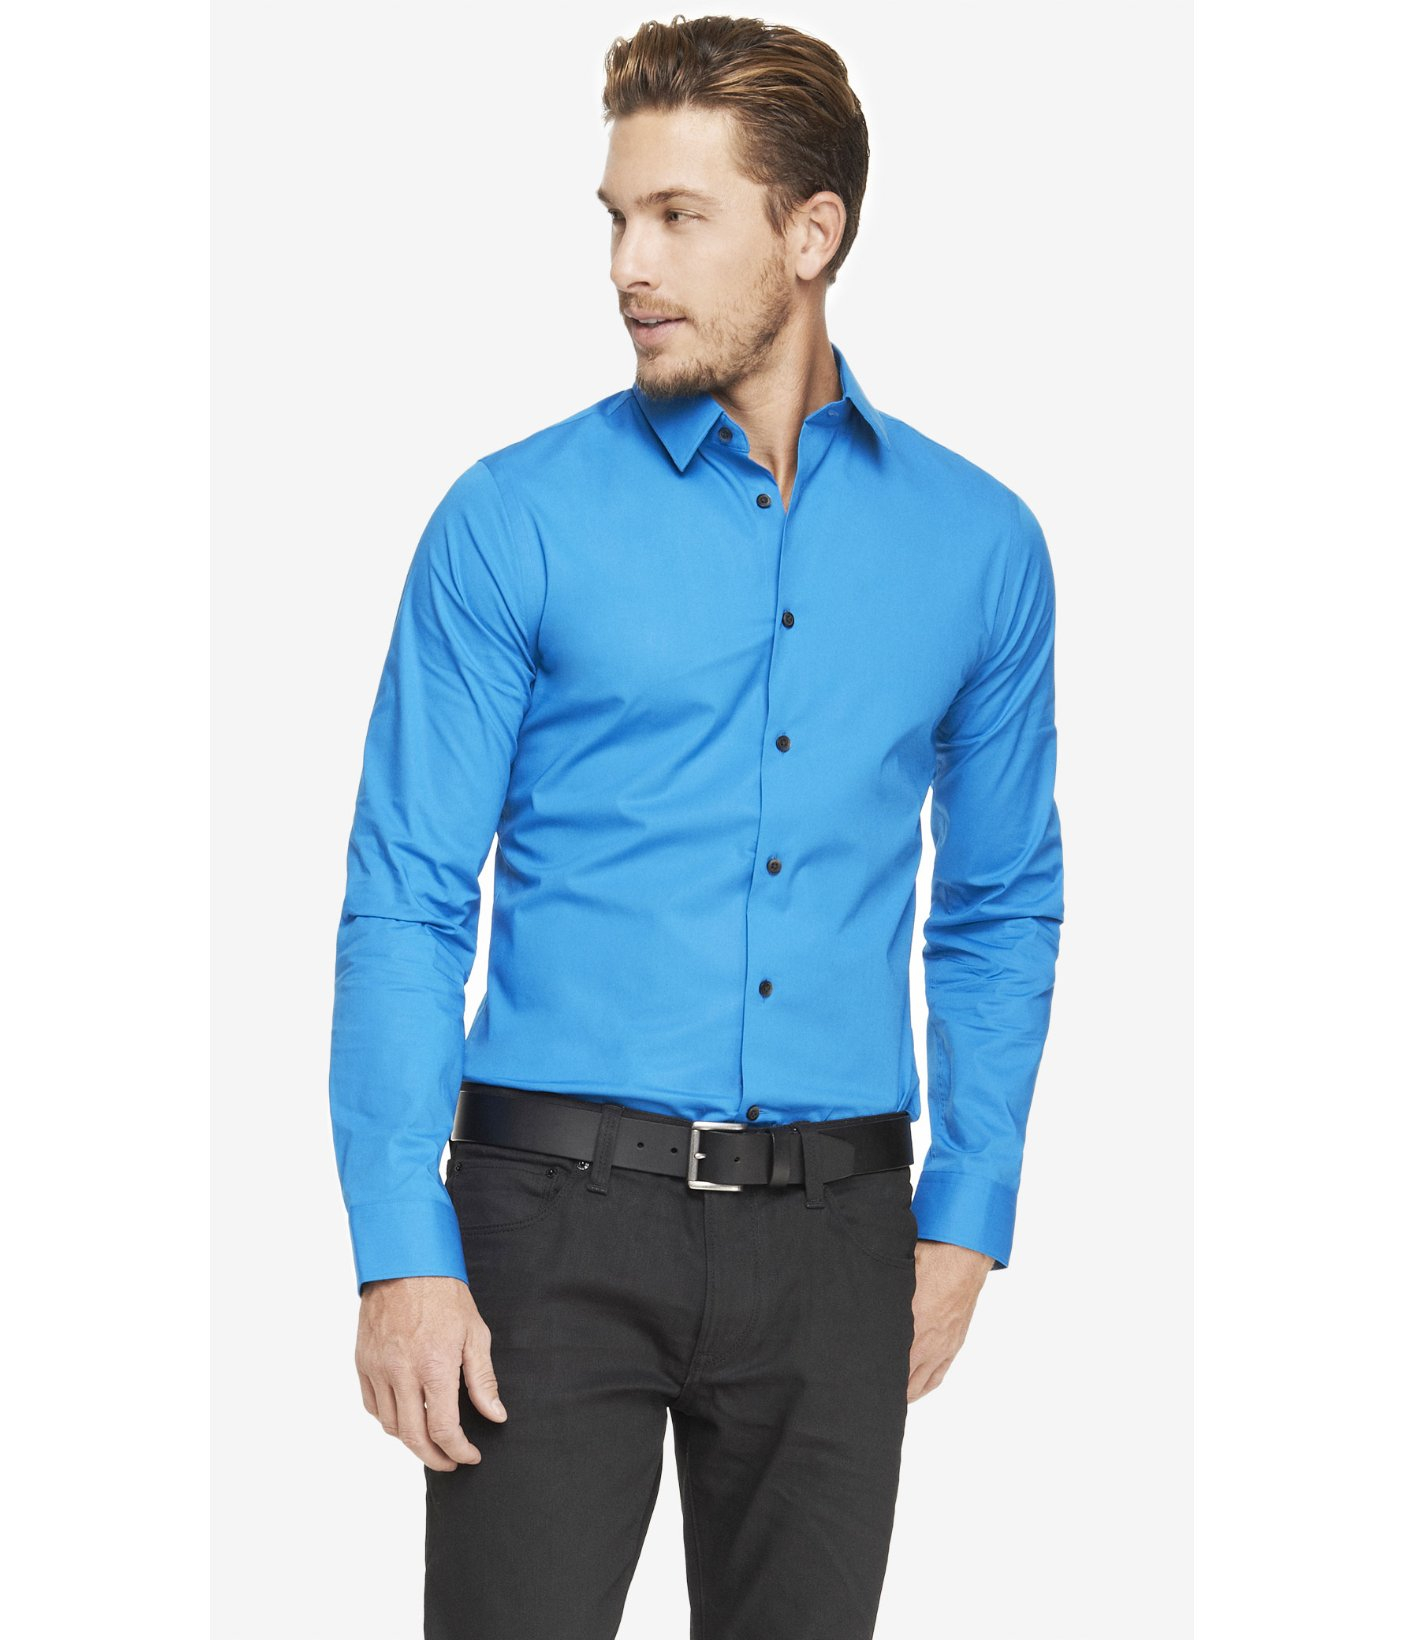 Express tall extra slim 1mx stretch cotton shirt in blue for Slim and tall shirts